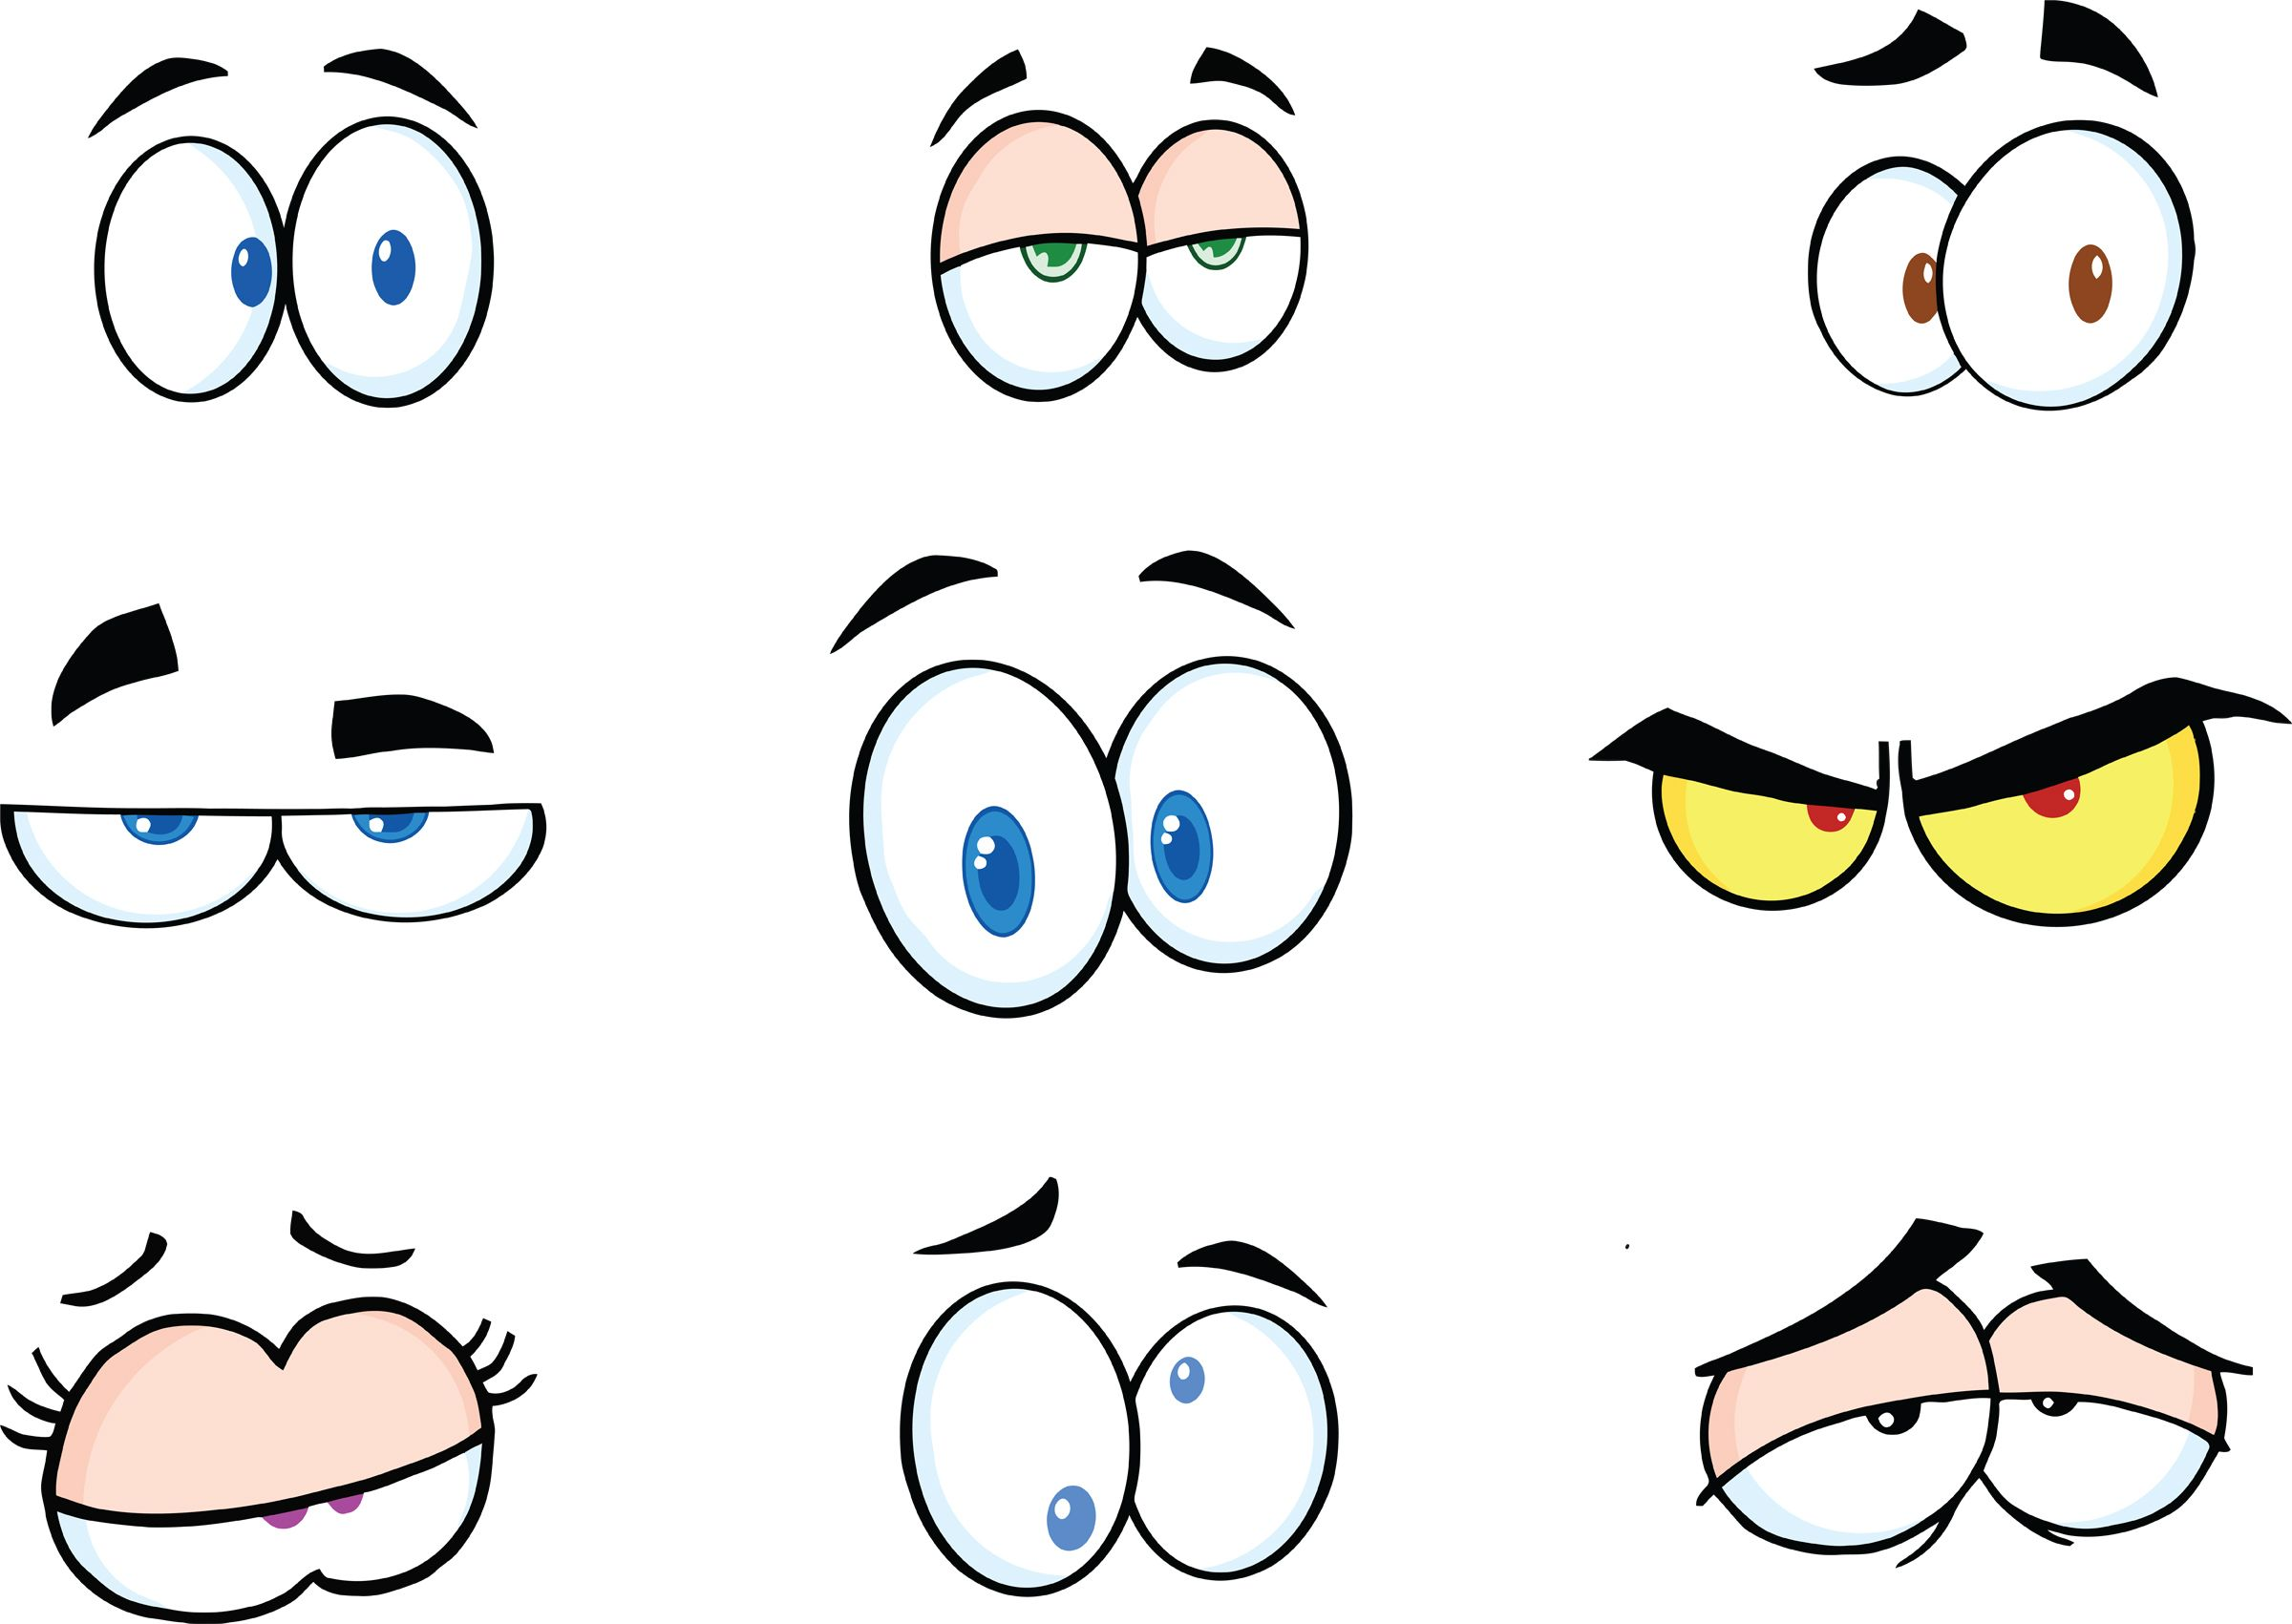 Funny Cartoon Eyes Clipart - Free Clipart | Cartoon ...